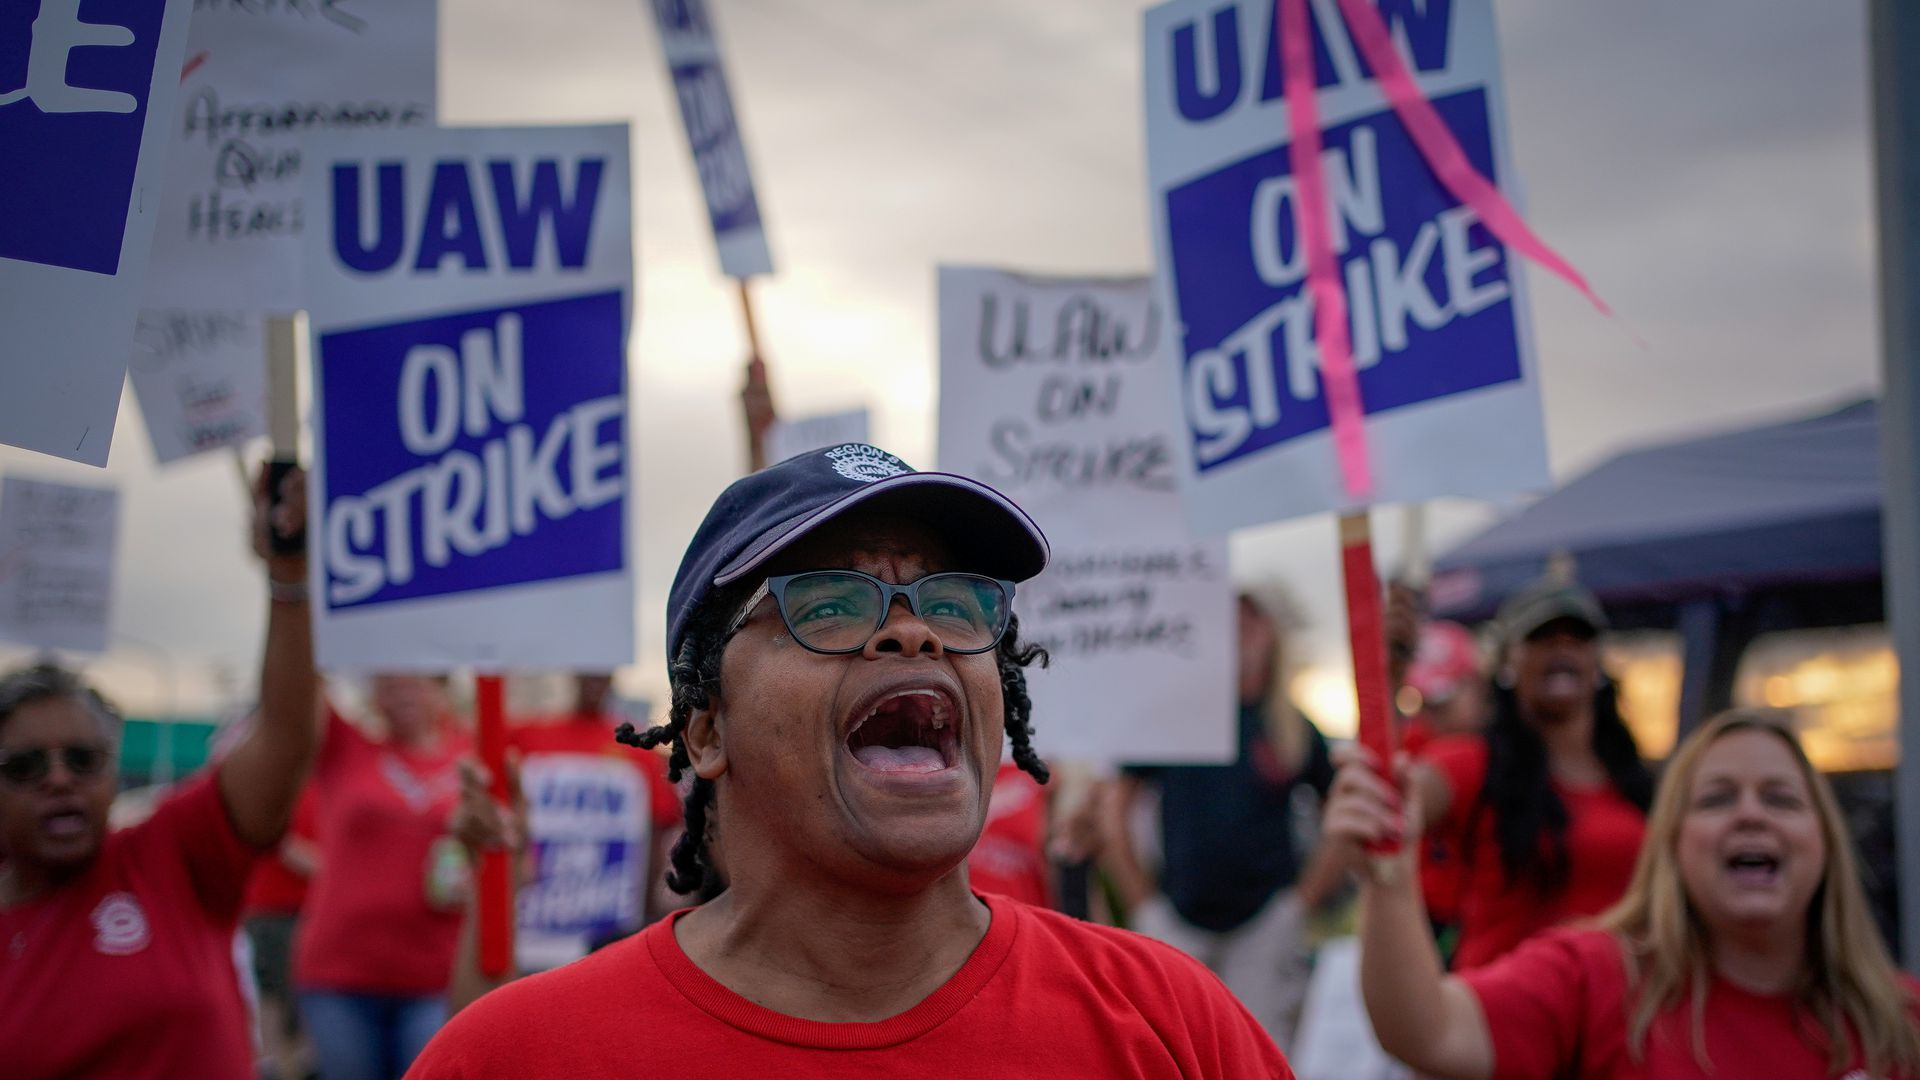 "In this image, a woman shouts while standing in front of people holding signs that say ""UAW strike"""